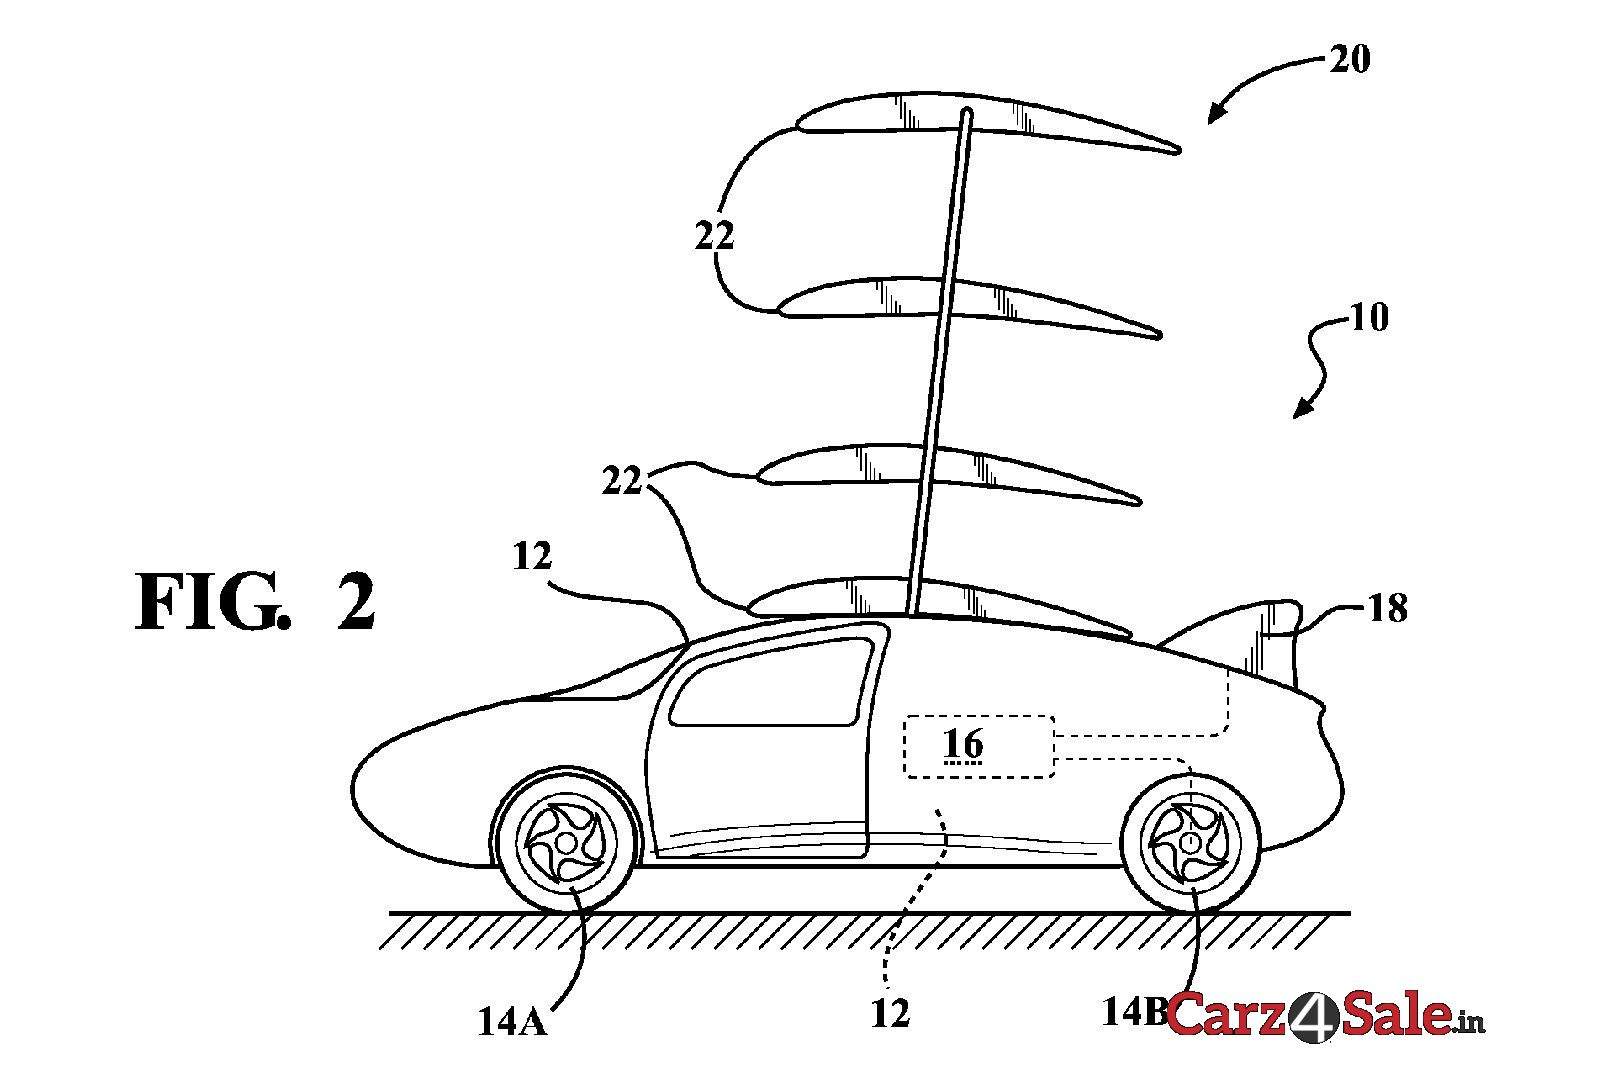 Toyota Flying Car Patent Retracted